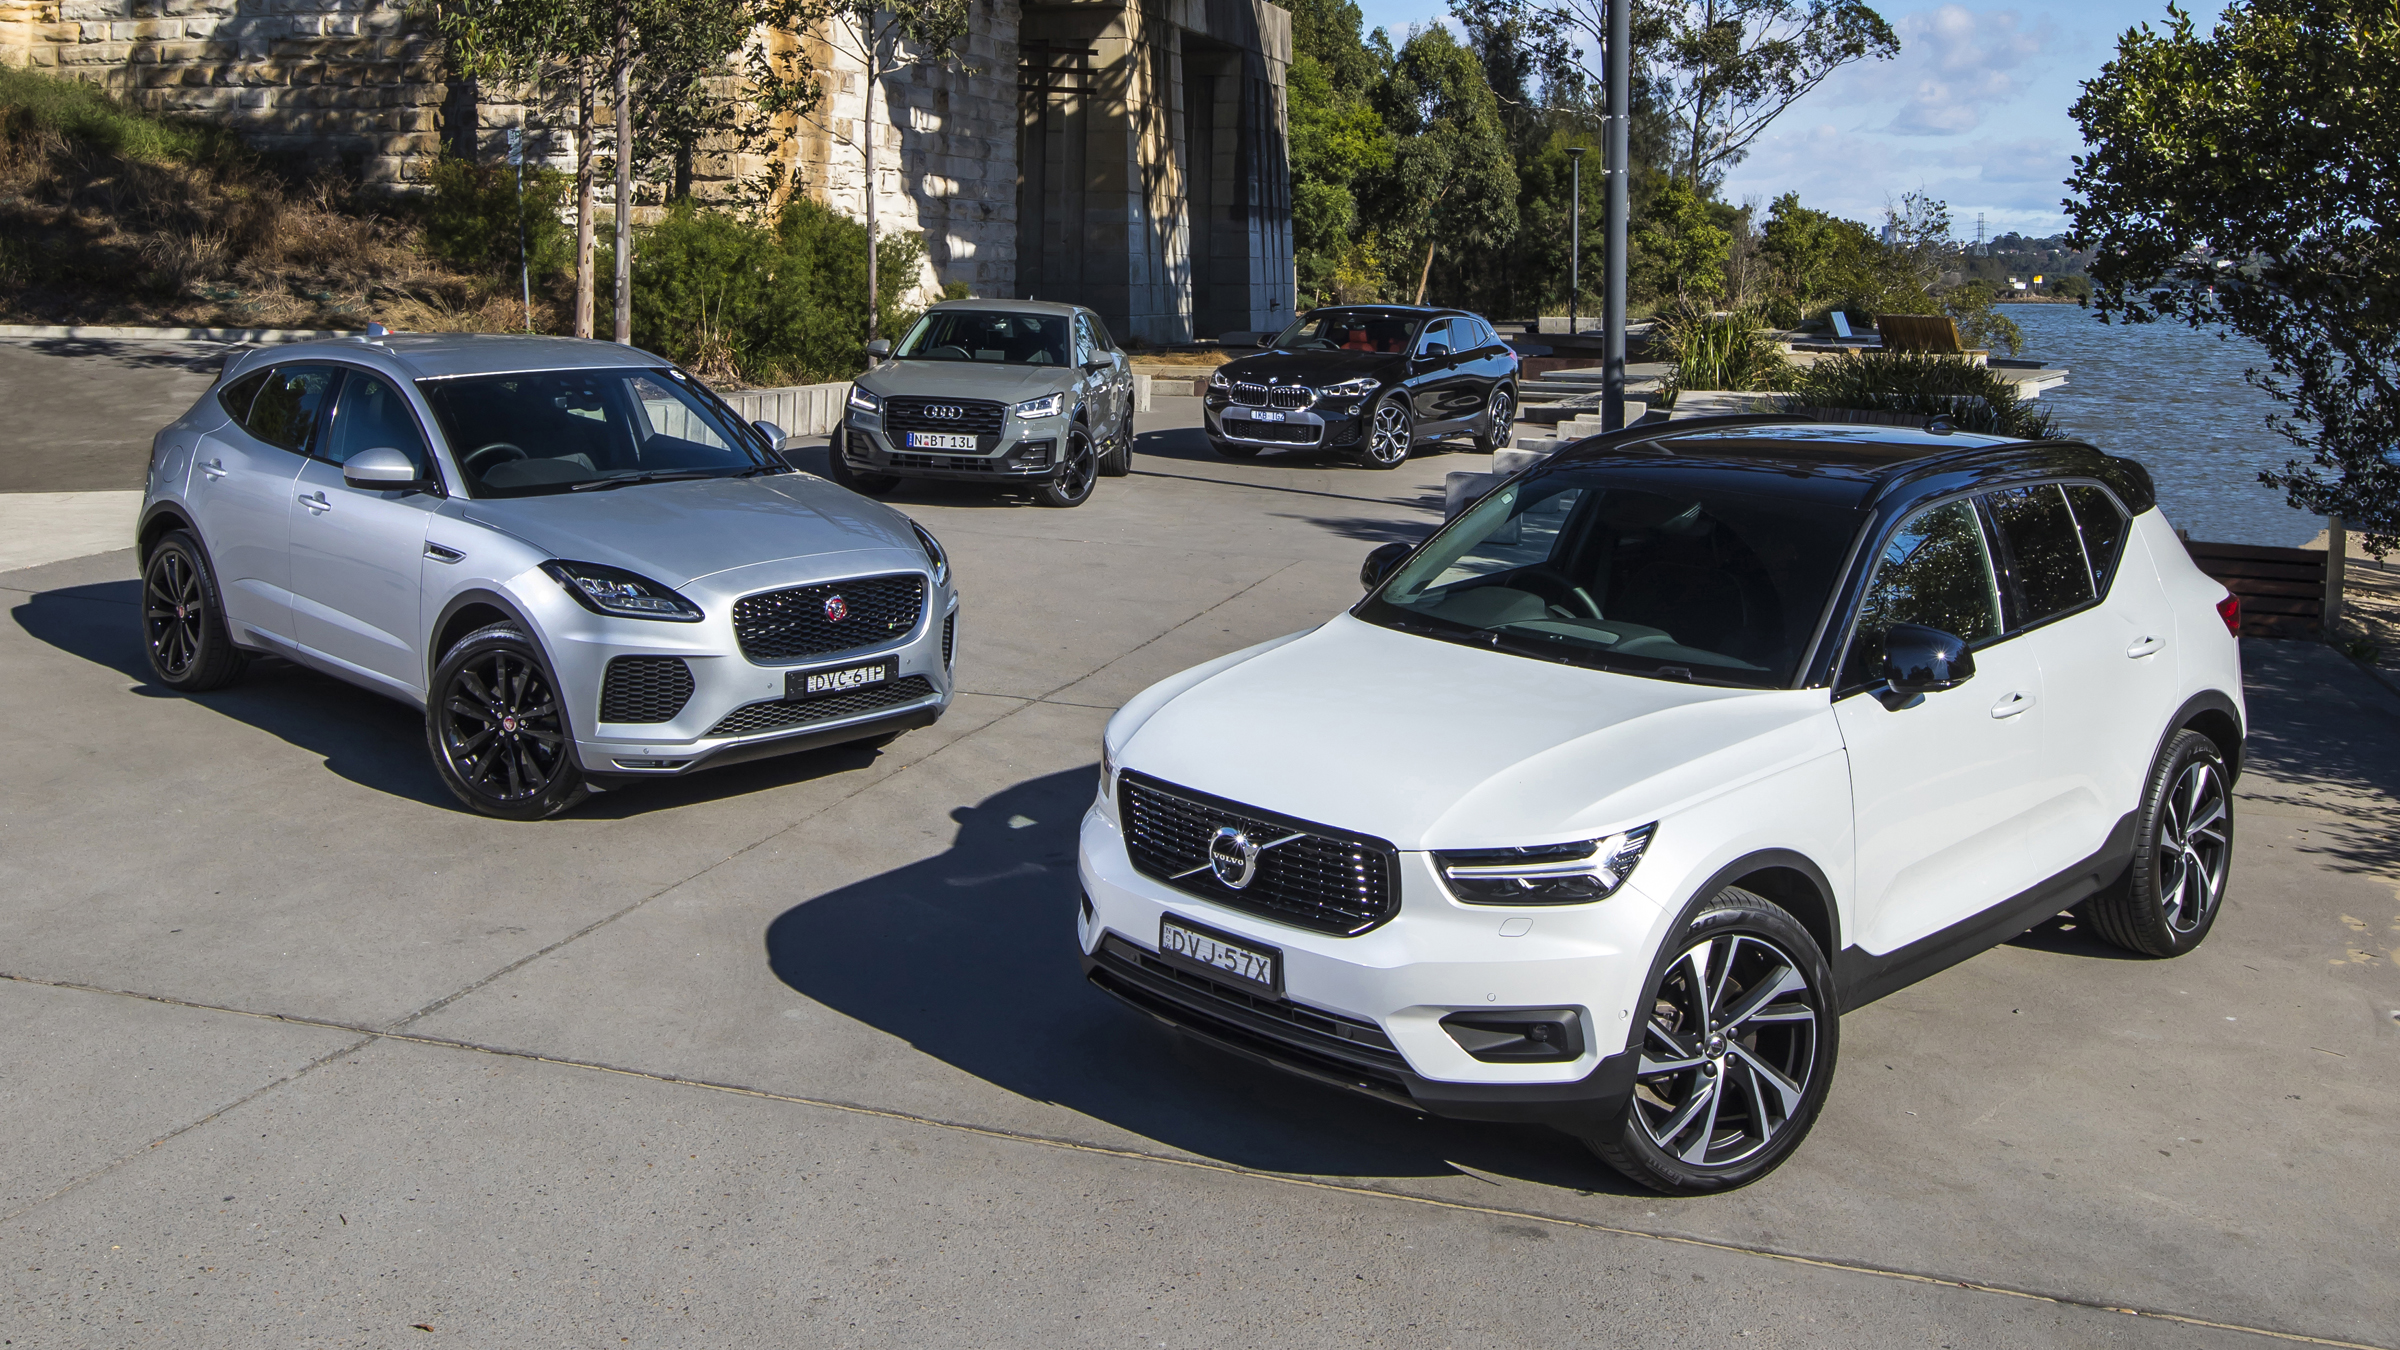 The new Volvo XC40 and Jagaur E-Pace take on the Audi Q2 and BMW X2.